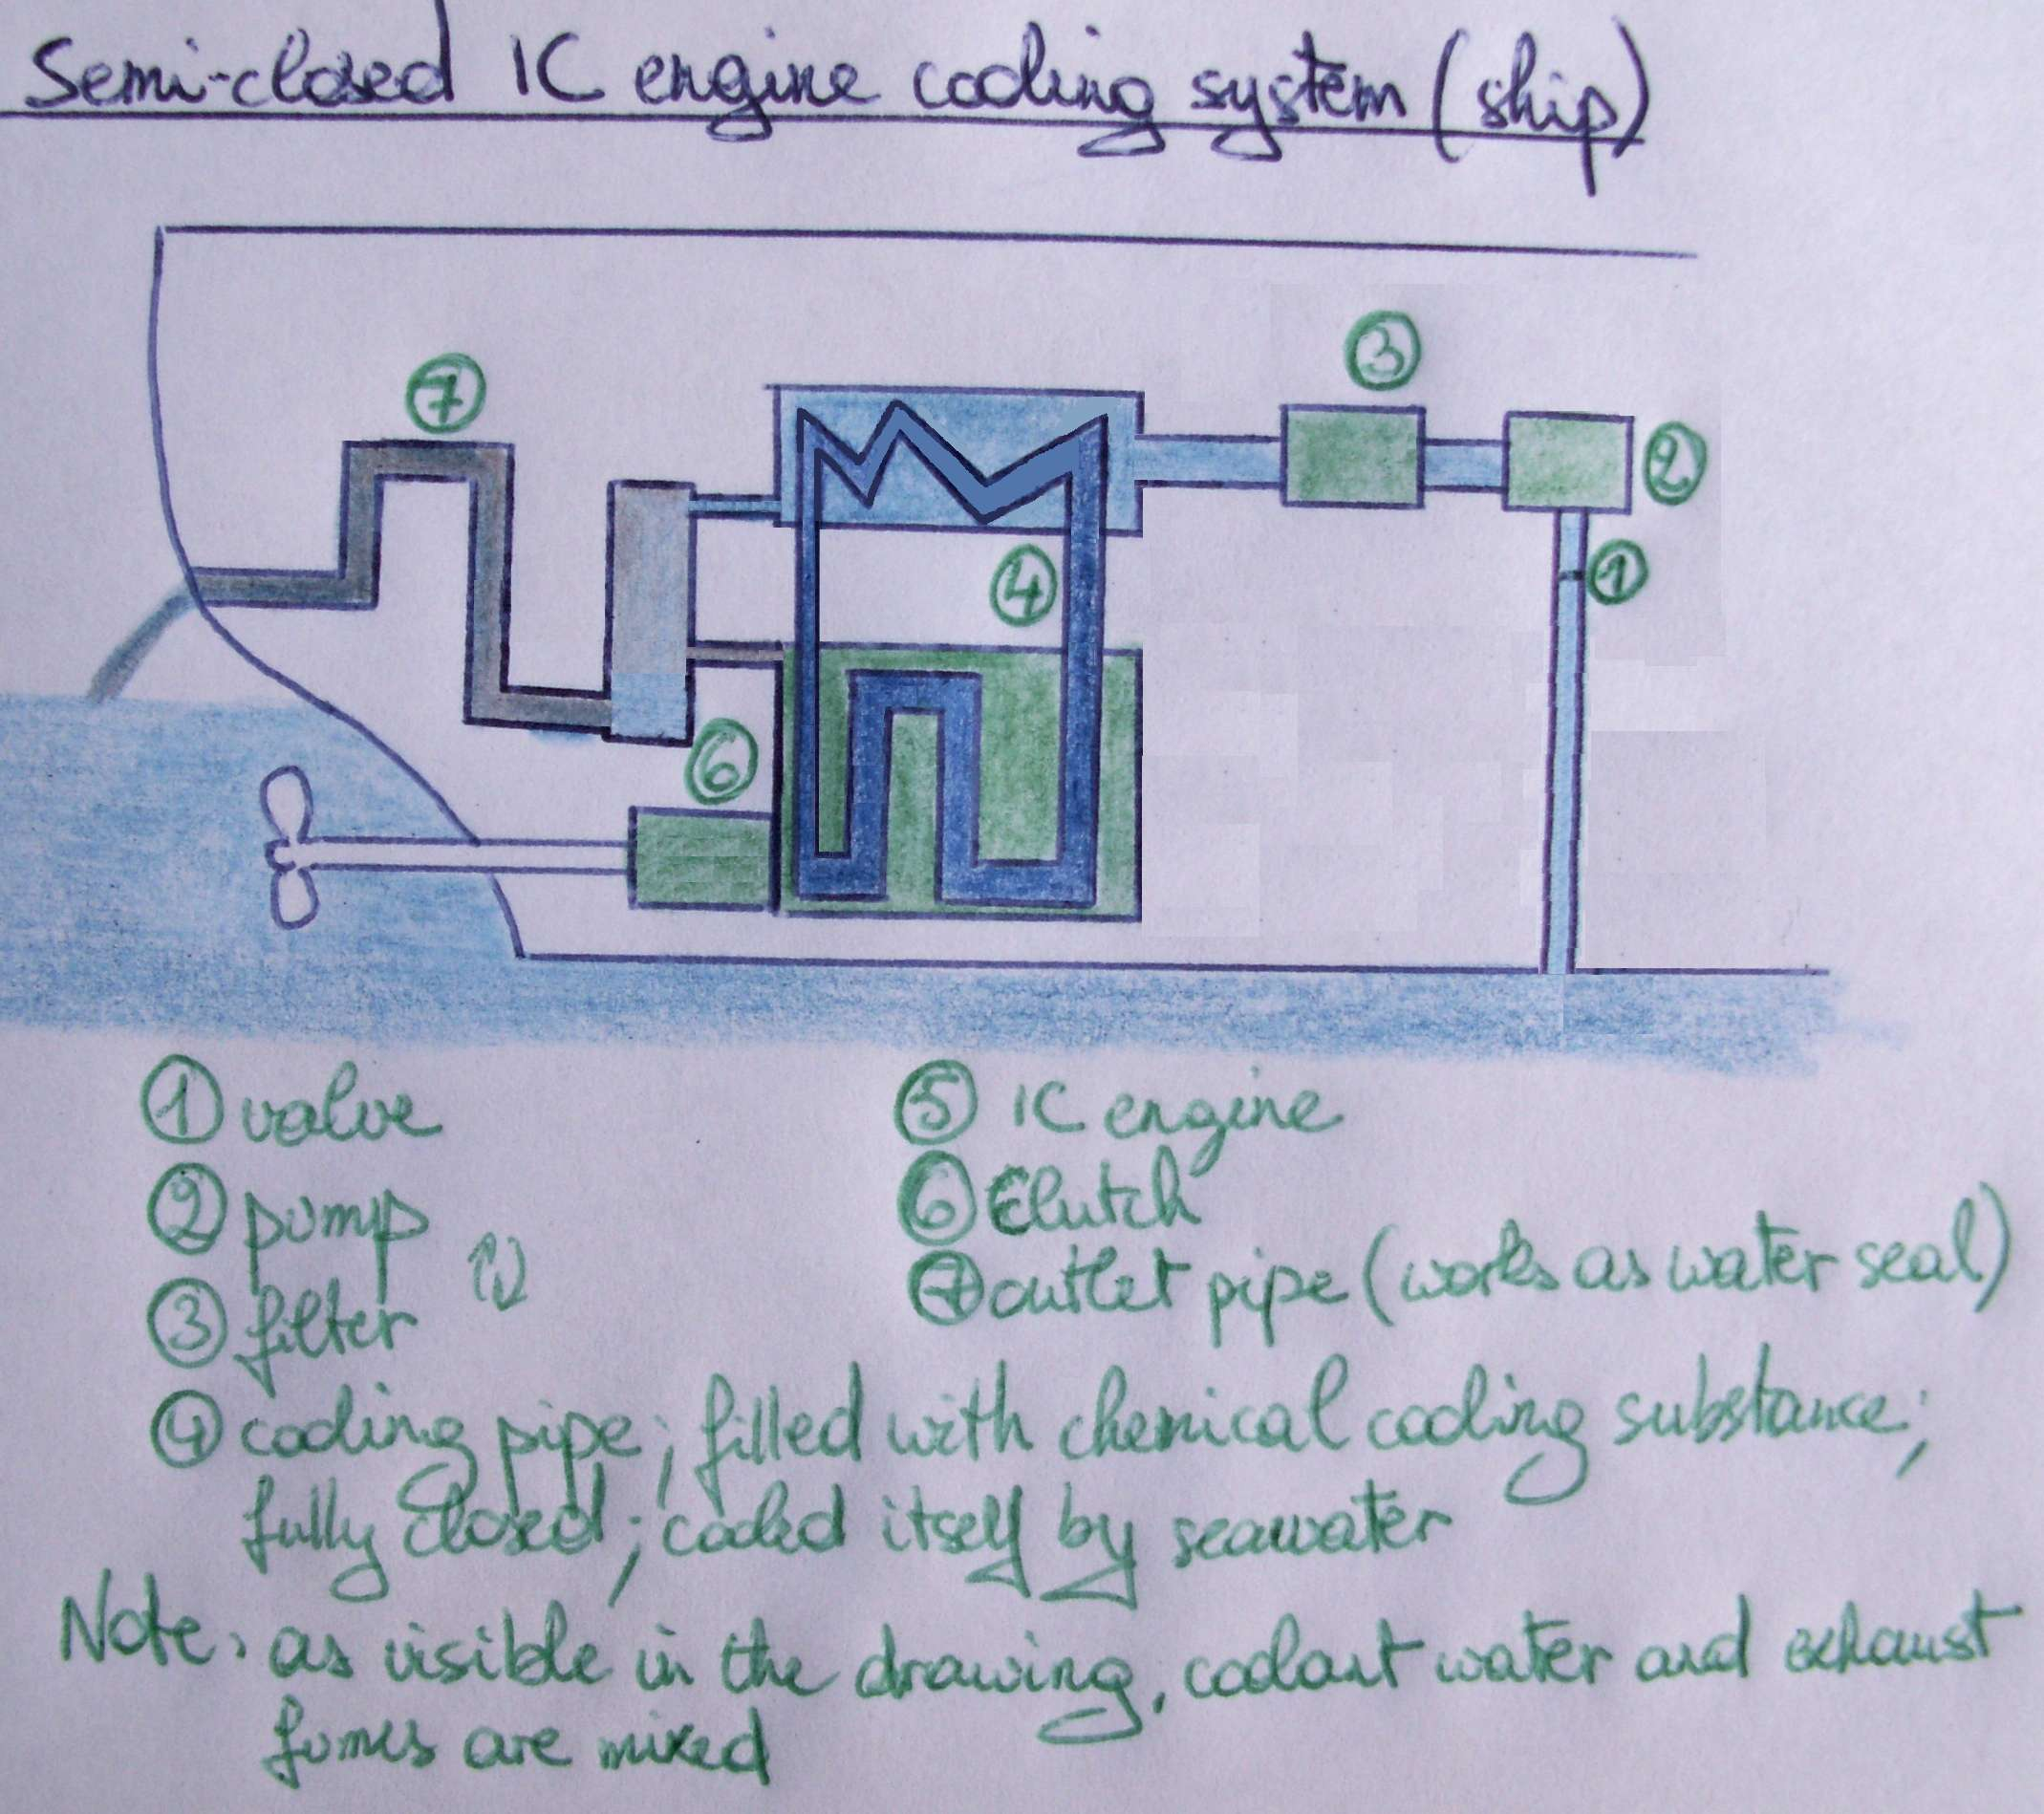 File:Semiclosed IC engine cooling system (ship).JPG Wikipedia the  #3E5B8D